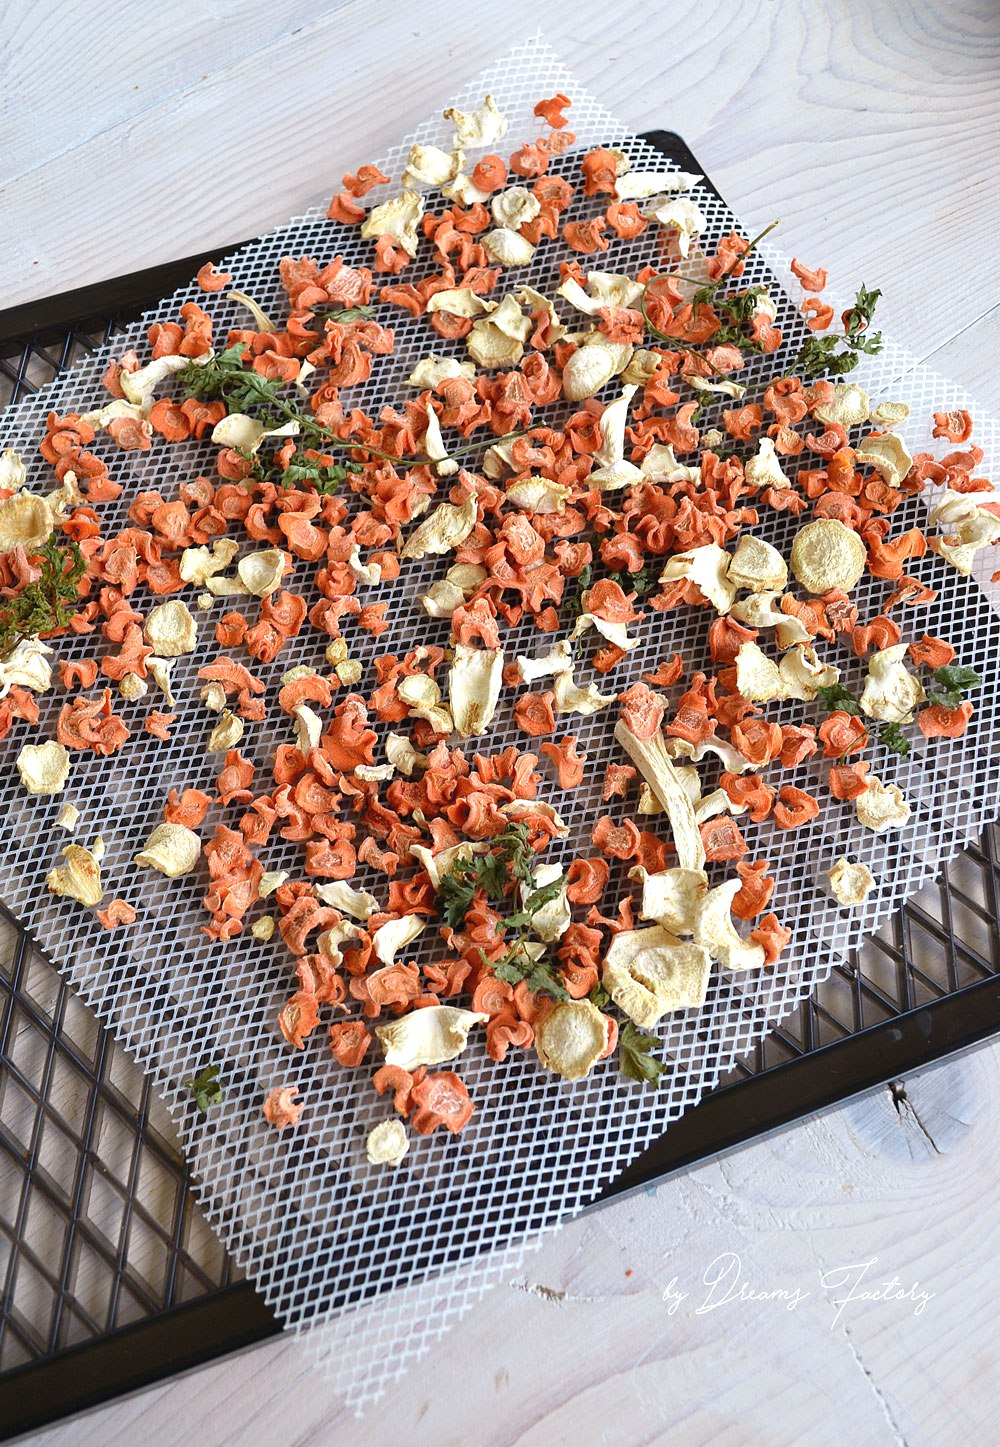 These sun-dried tomatoes chips with sea salt, cashew and herbs are easy to make and almost too good to be true when it comes to their rich delicious flavor! www.bydreamsfactory.com